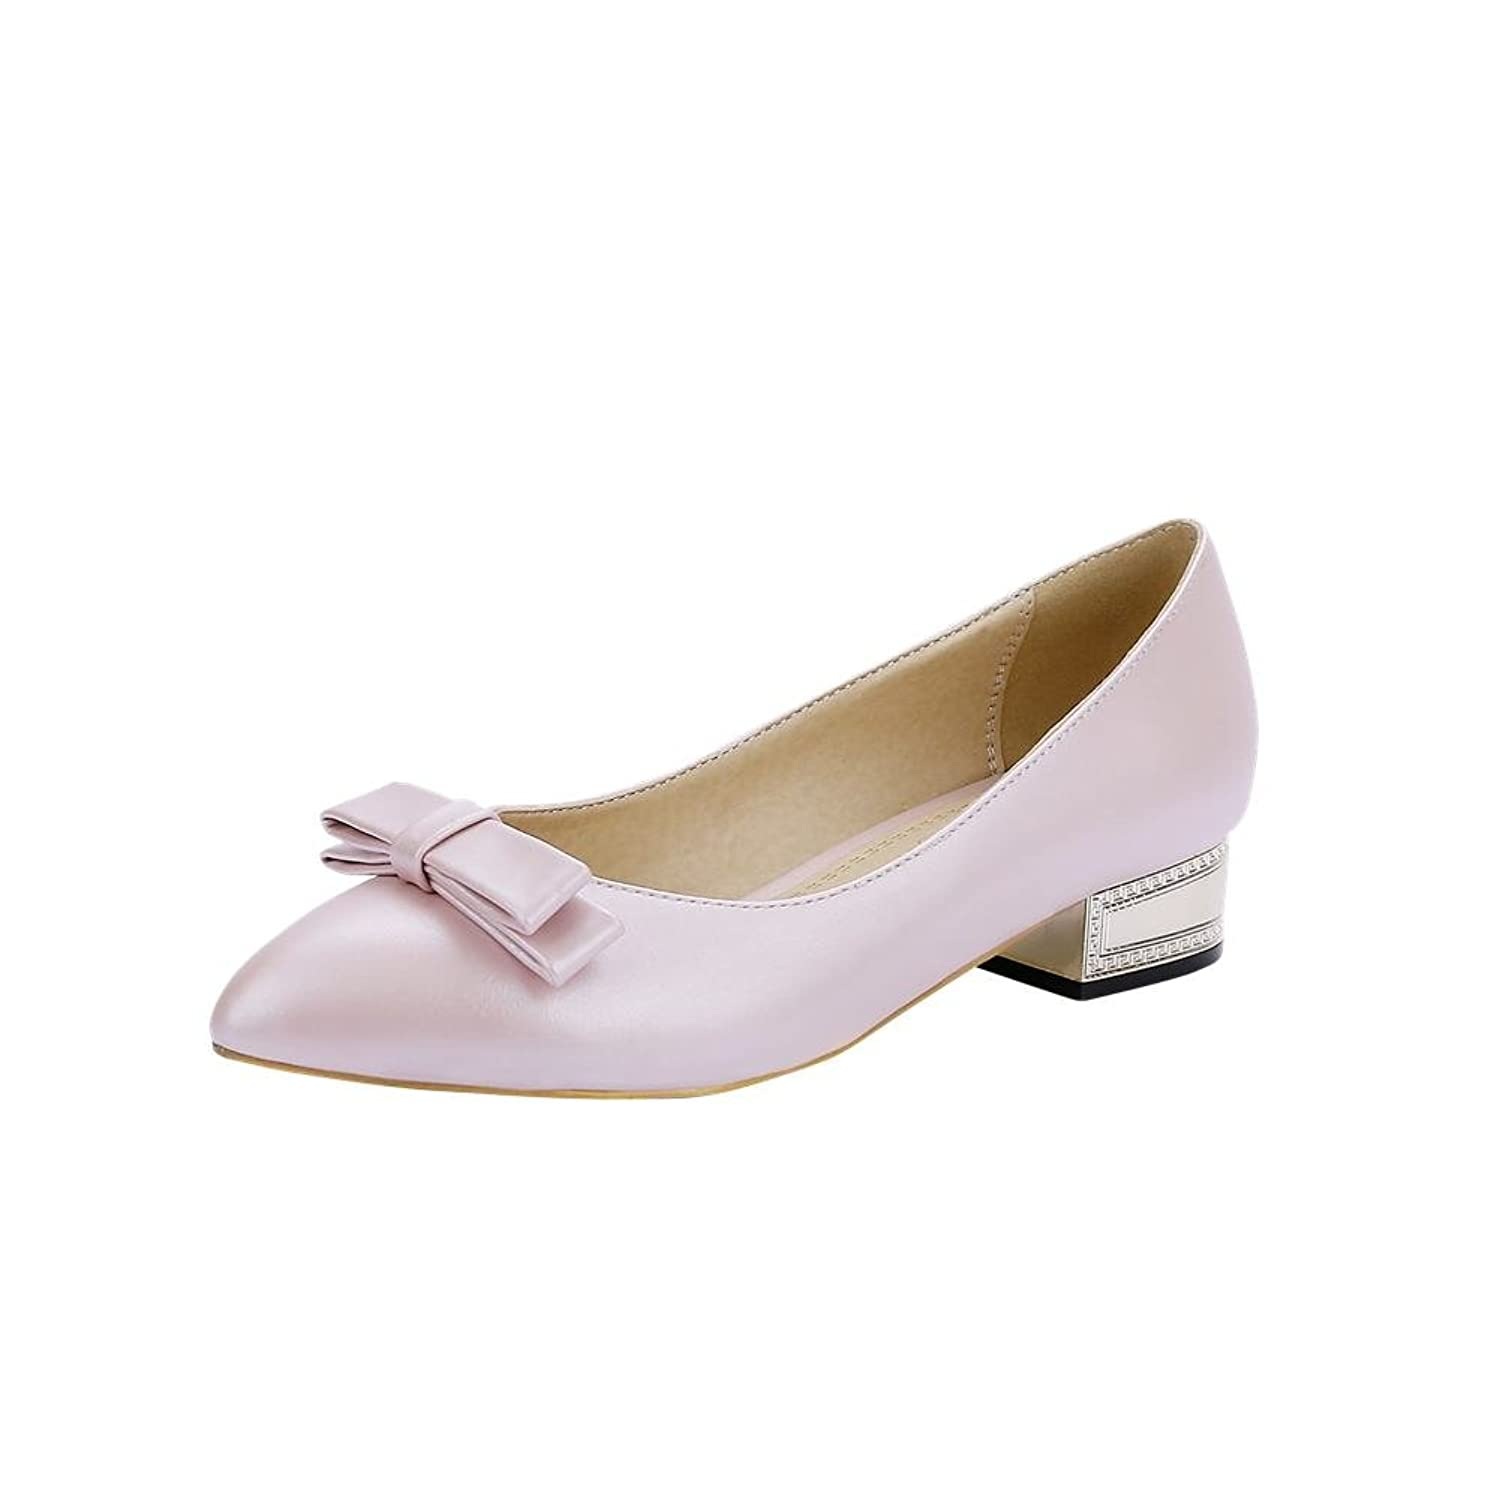 Carolbar Women'S Bows Elegance Sweet Chic Party Pointed-Toe Bridal Low Heel Dress Loafers Shoes